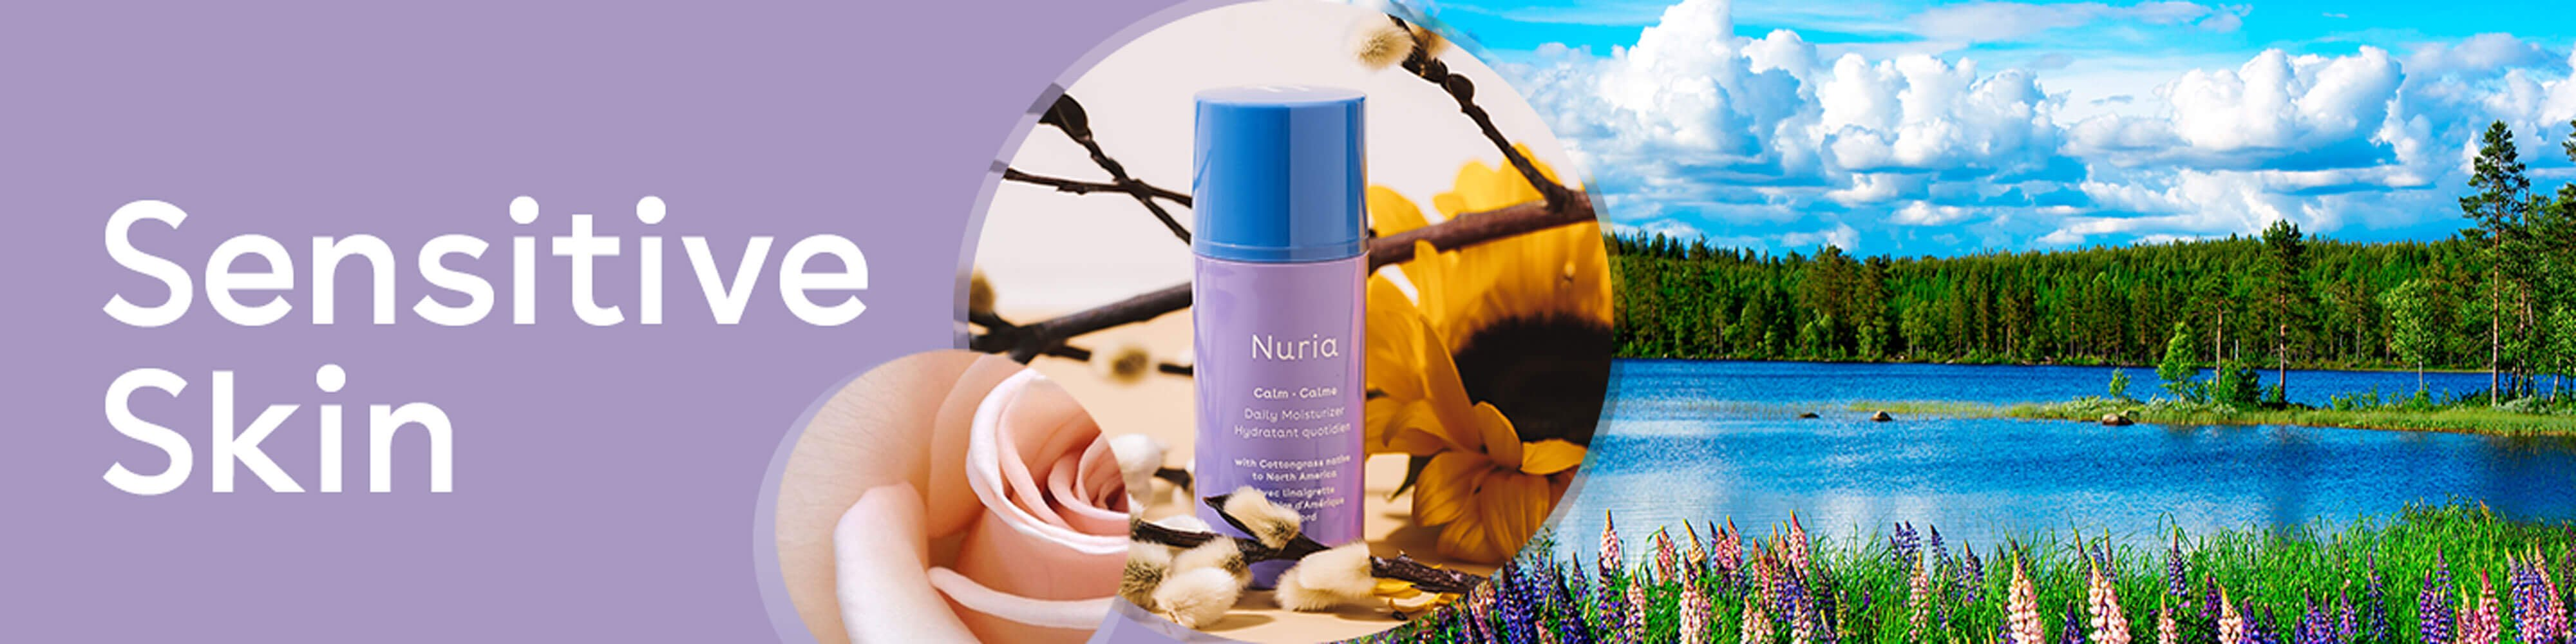 Sensitive Skin - Nuria's products for your skin concerns